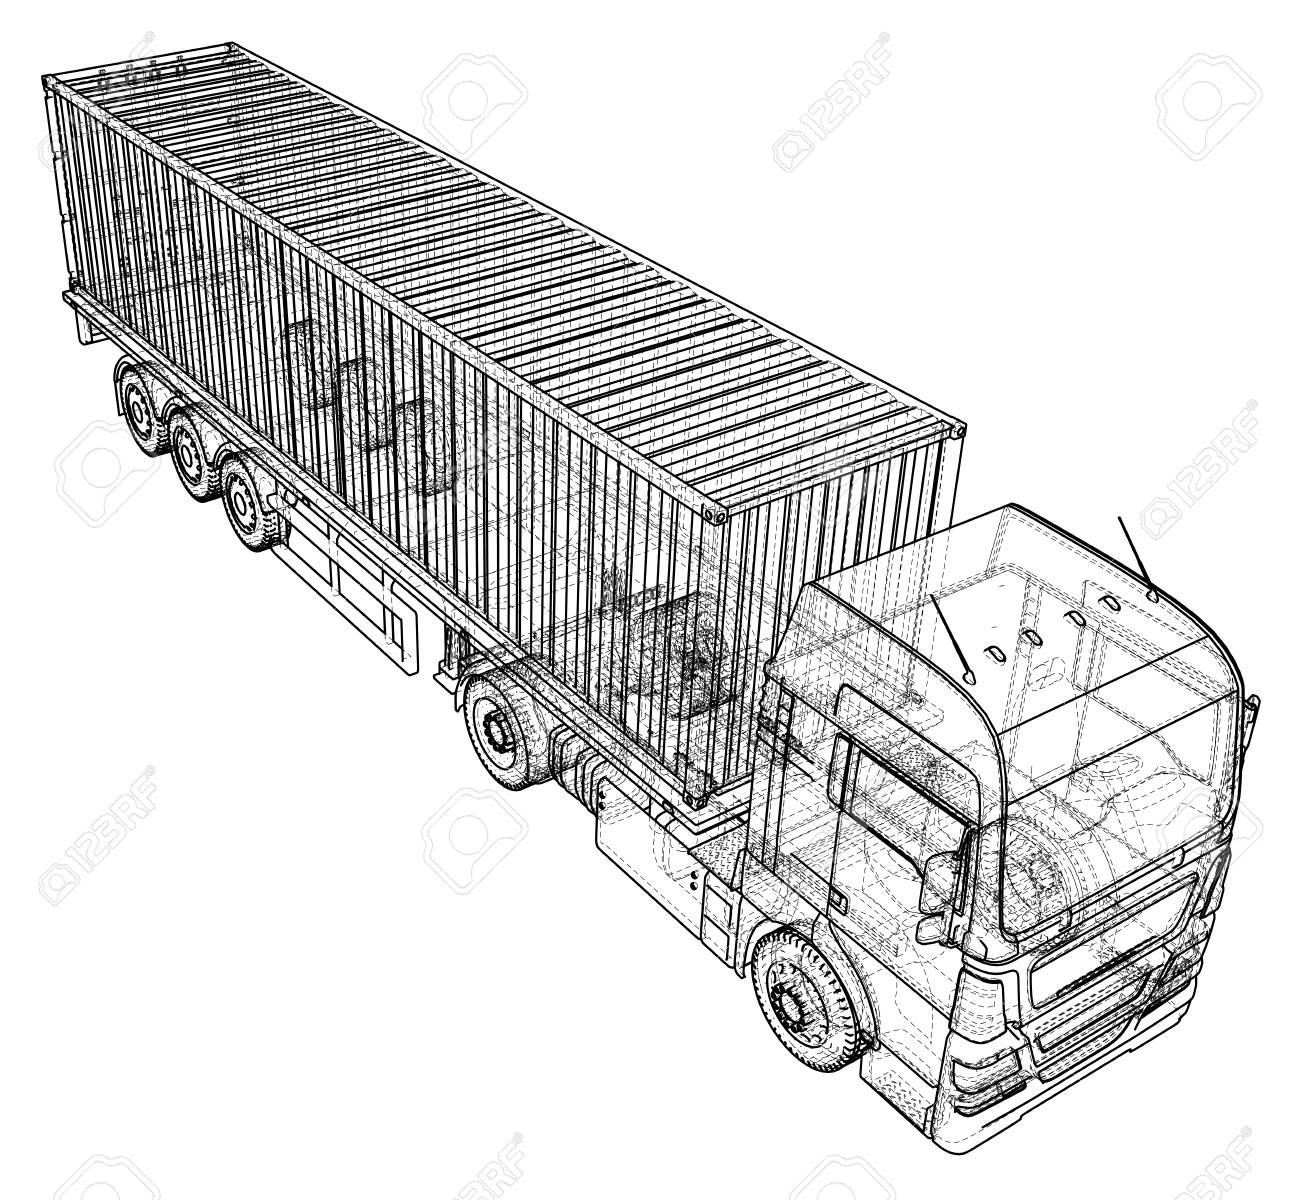 87661243 3d tracing illustration of big cargo truck linear style 3d tracing illustration of big cargo truck, linear style royalty